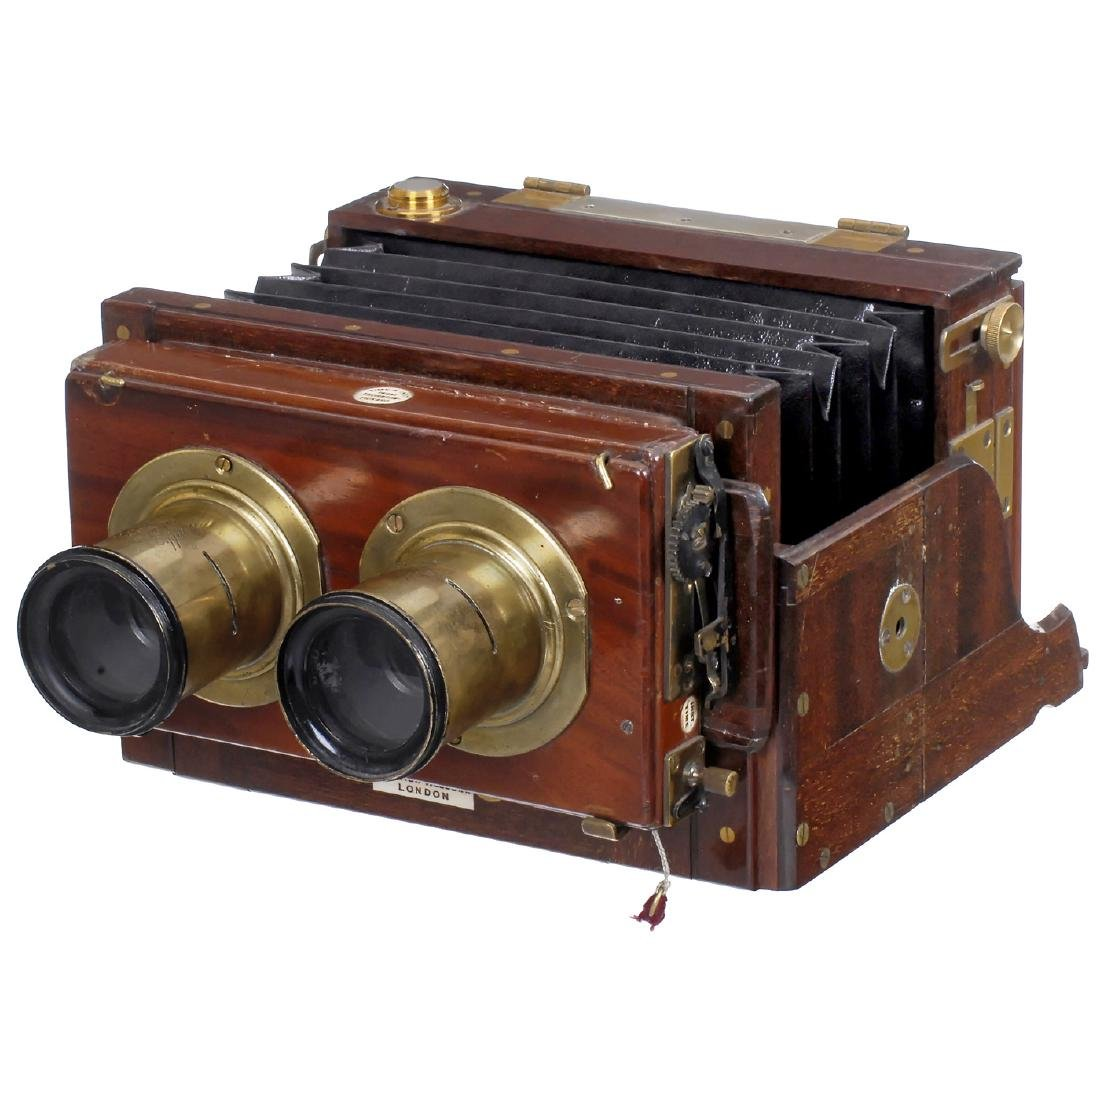 Stereo Field Camera by Watson & Sons, c. 1892